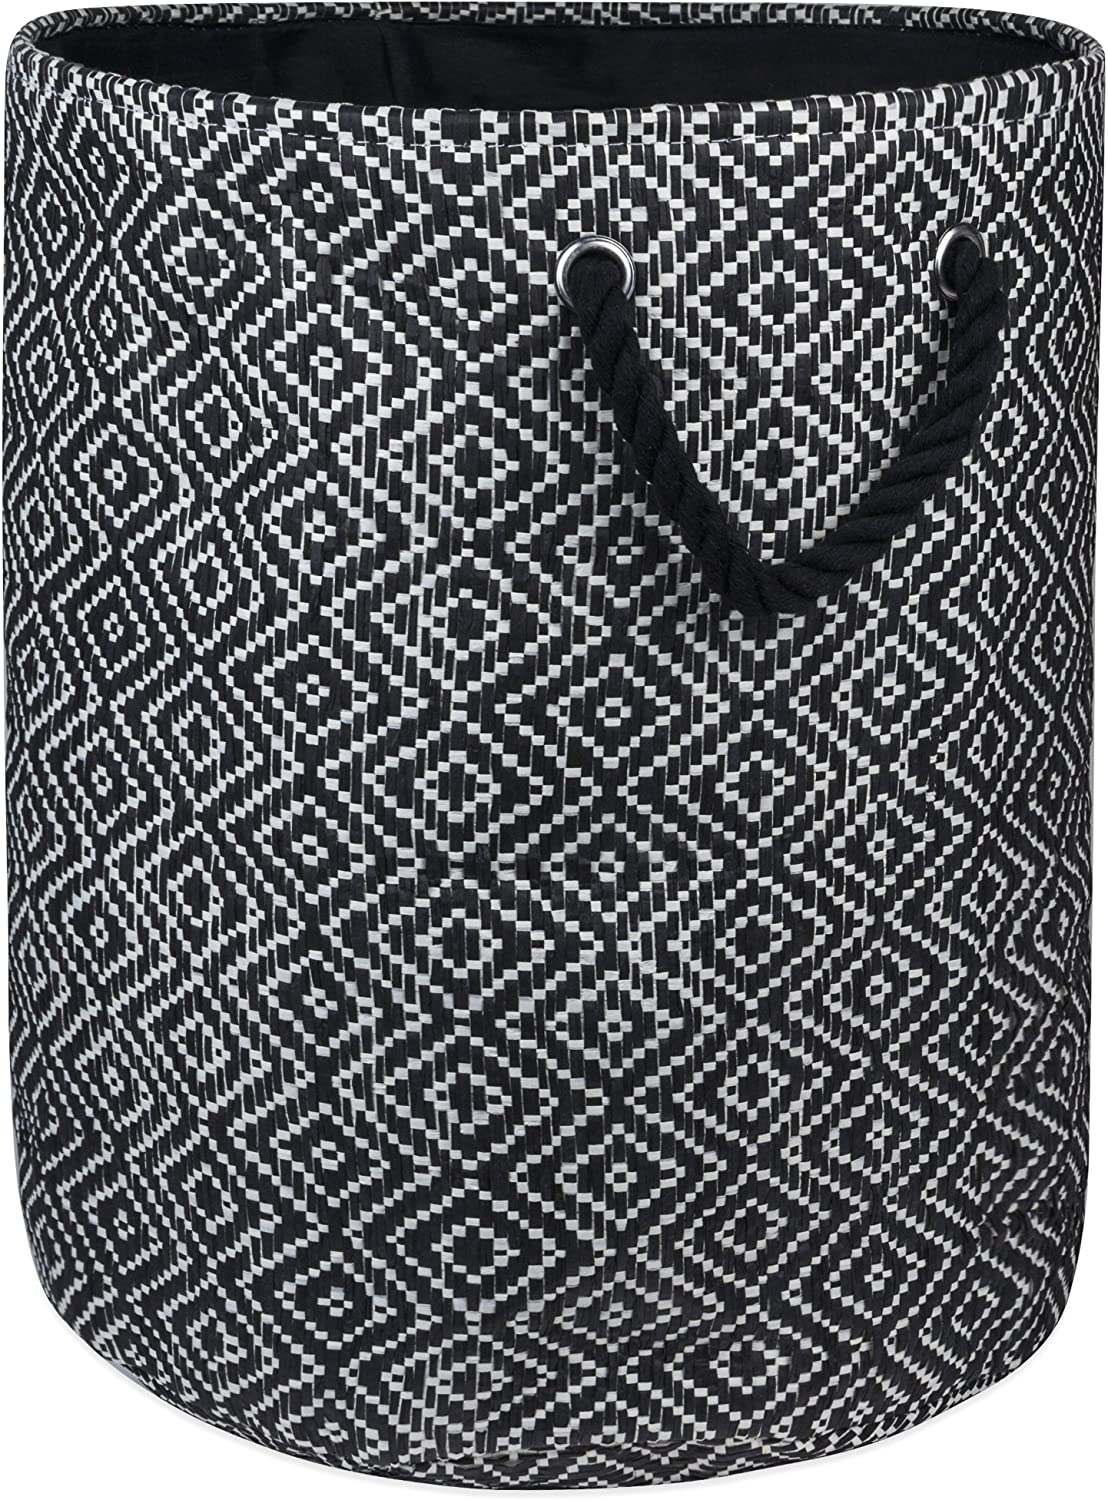 DII, Woven Paper Basket/Bin, Collapsible and Convenient, 13.75x13.75x17, Diamond Black & White